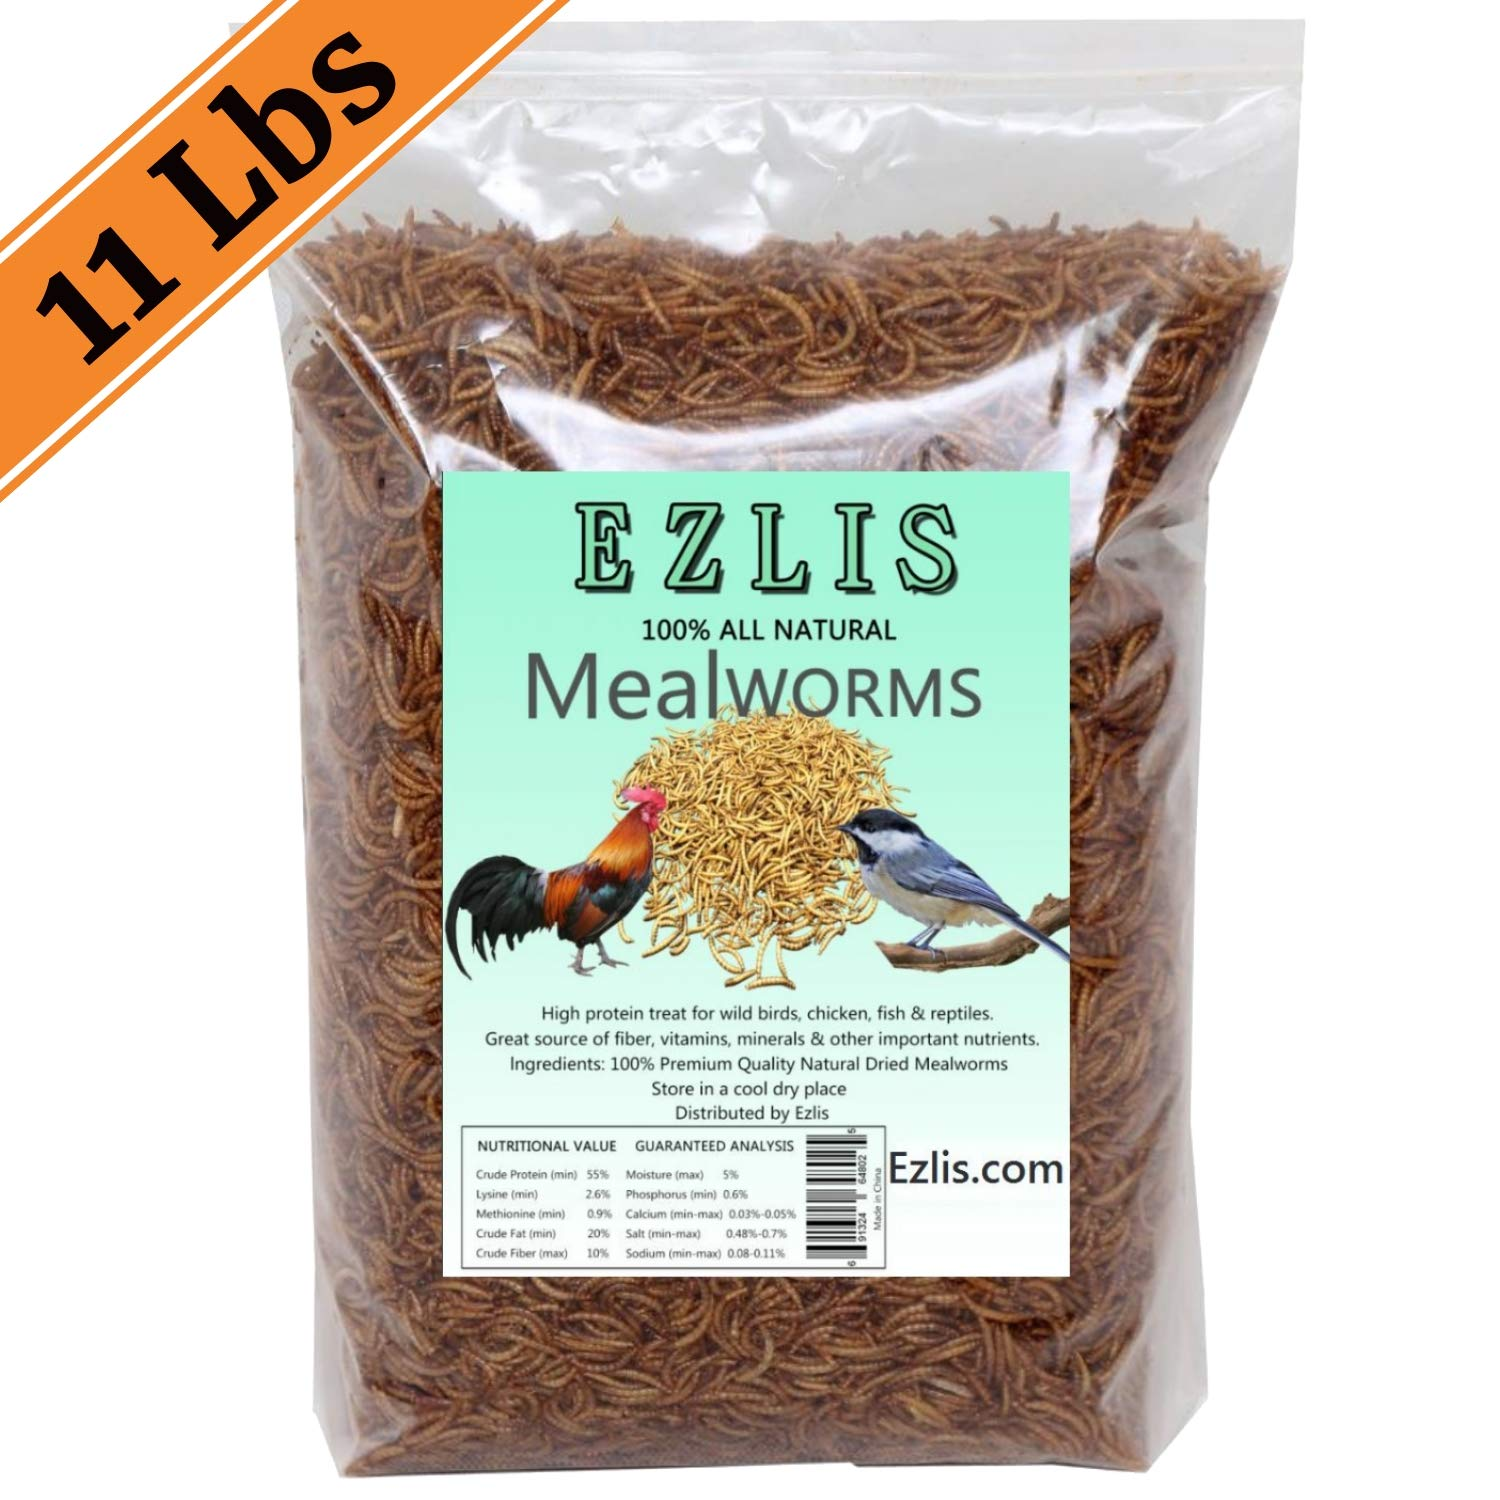 Ezlis Dried Mealworms for Chickens 11lbs, Chicken Treats, Duck Feed, Organic Chicken Feed, High-Protein Meal Worms Bulk Food for Chickens, Bluebird Food, Poultry Feed, Hens, Wild Birds, Fish, Turtle